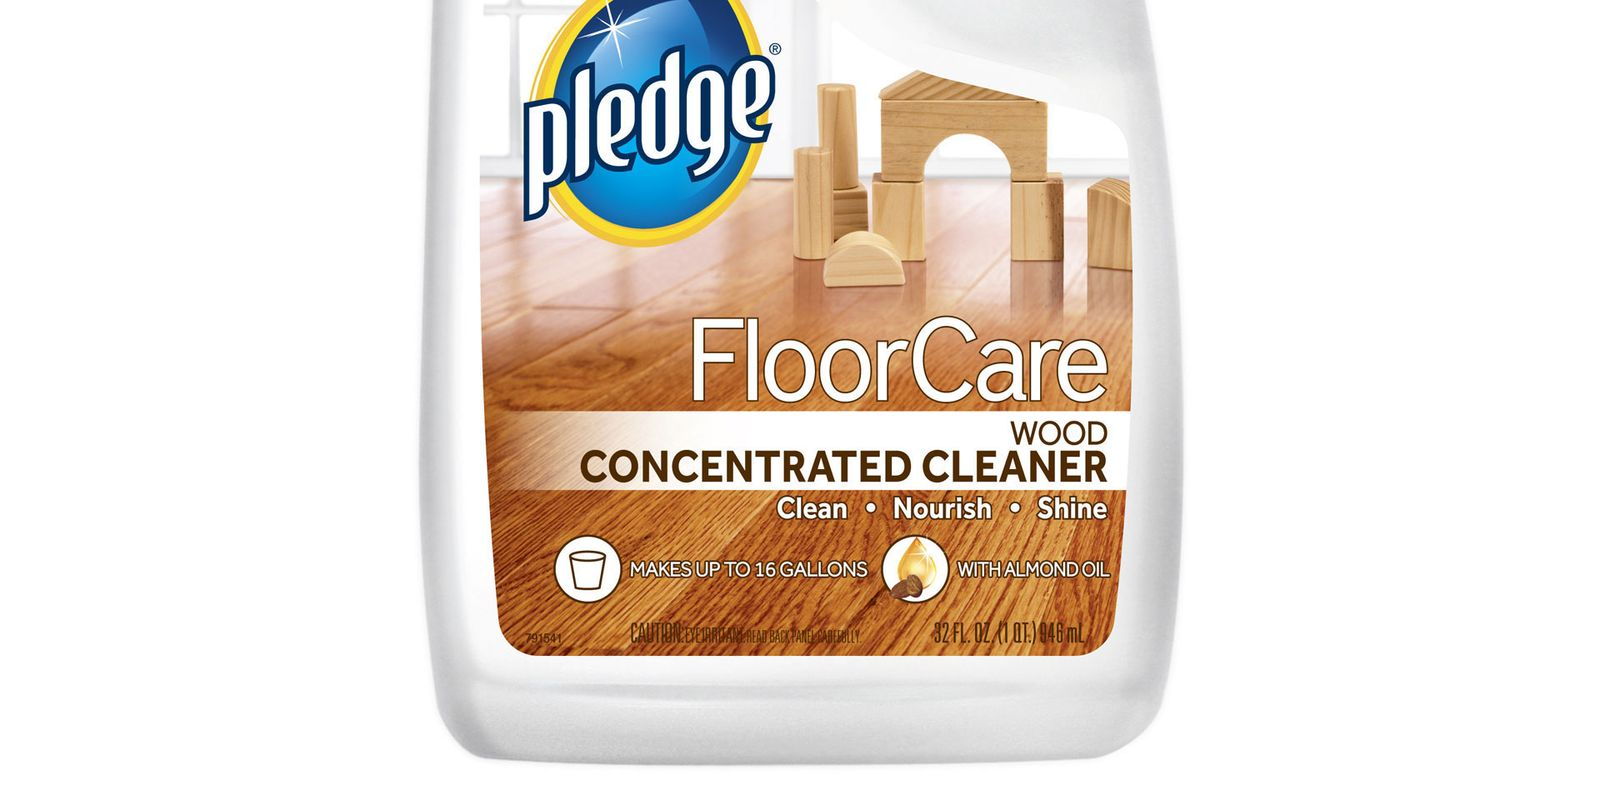 Pledge floorcare wood concentrated cleaner review for Flooring products